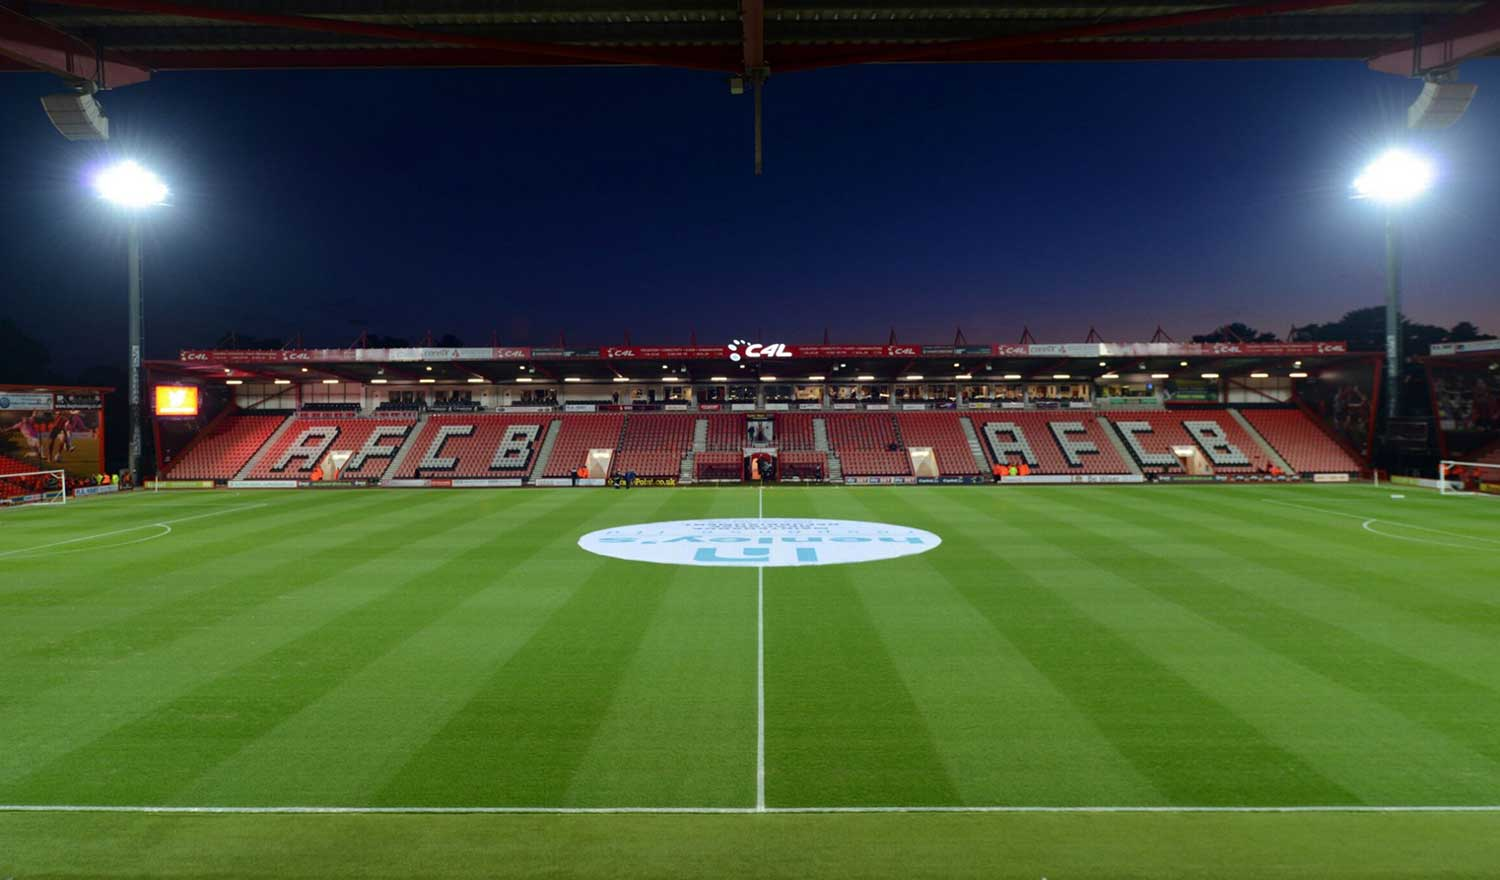 AFC-Bournemouth Stadium